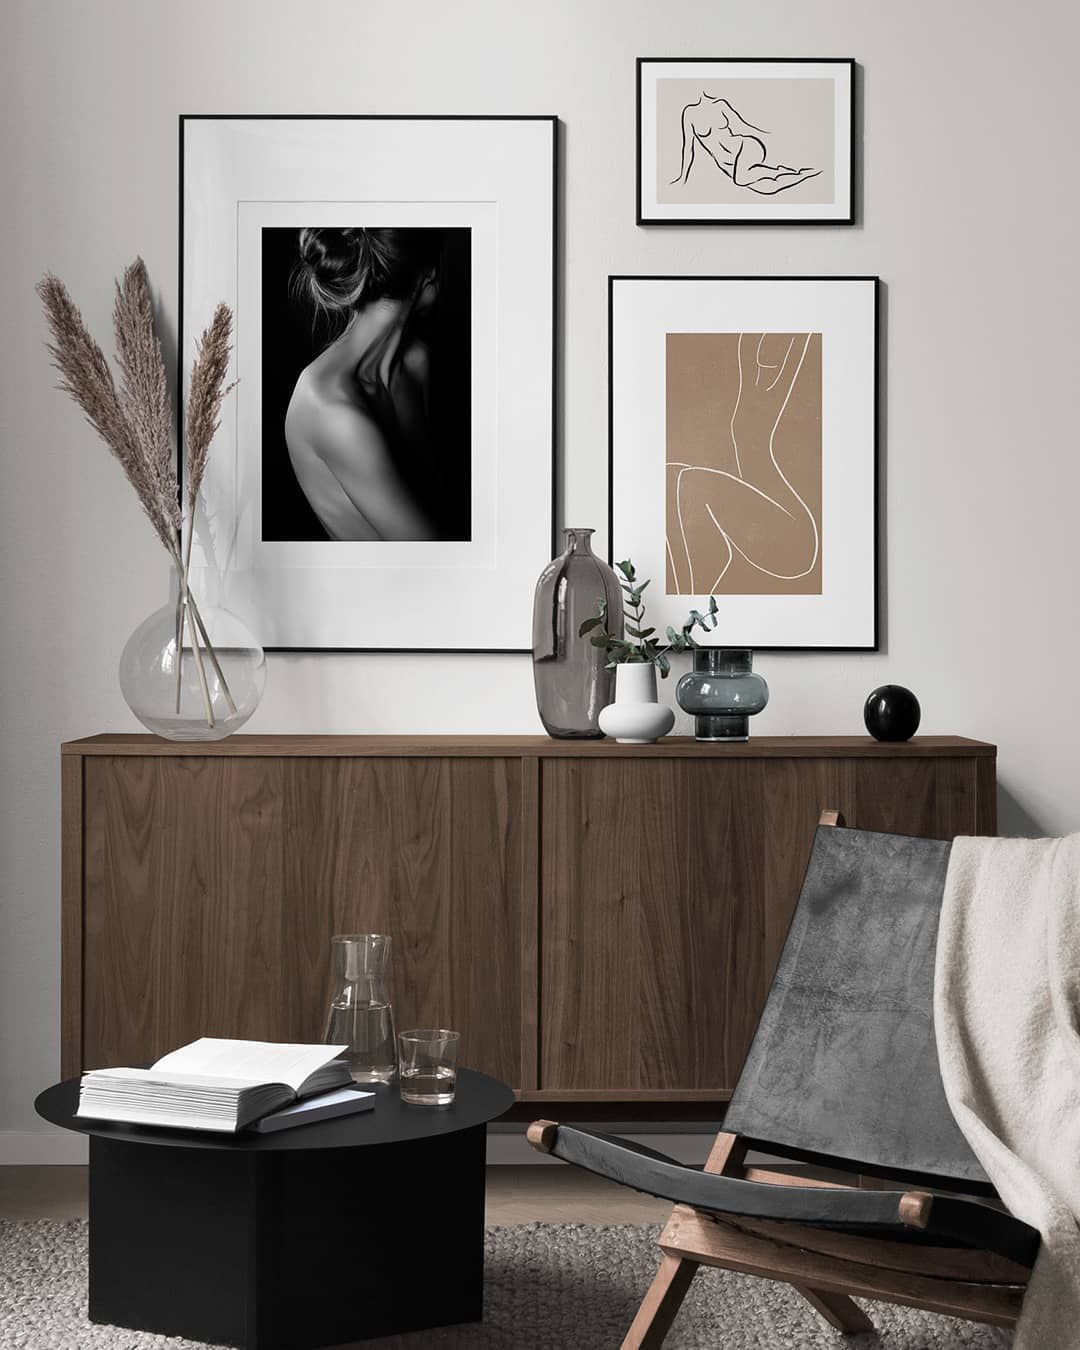 Desenio Posters Online On Instagram The Perfect Backdrop Designs Female Neck 50x70 Cm With A Pict In 2020 Gallery Wall Interior Home And Living